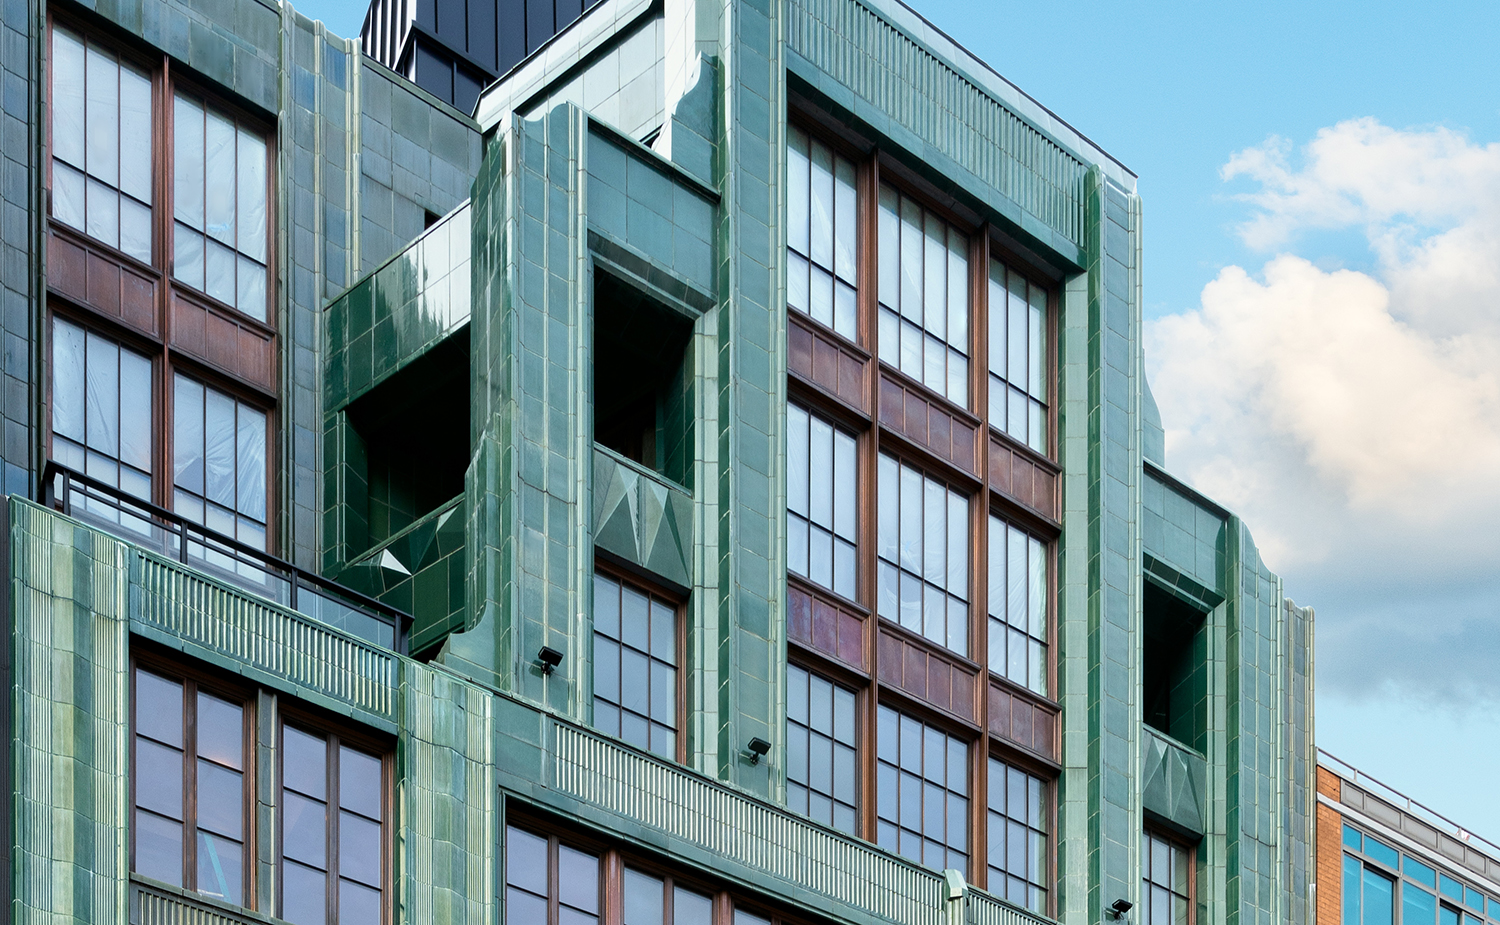 The Fitzroy in NYC is a new residential building by Roman and Williams with signature green glazed terra cotta masonry manufactured by Boston Valley Terra Cotta